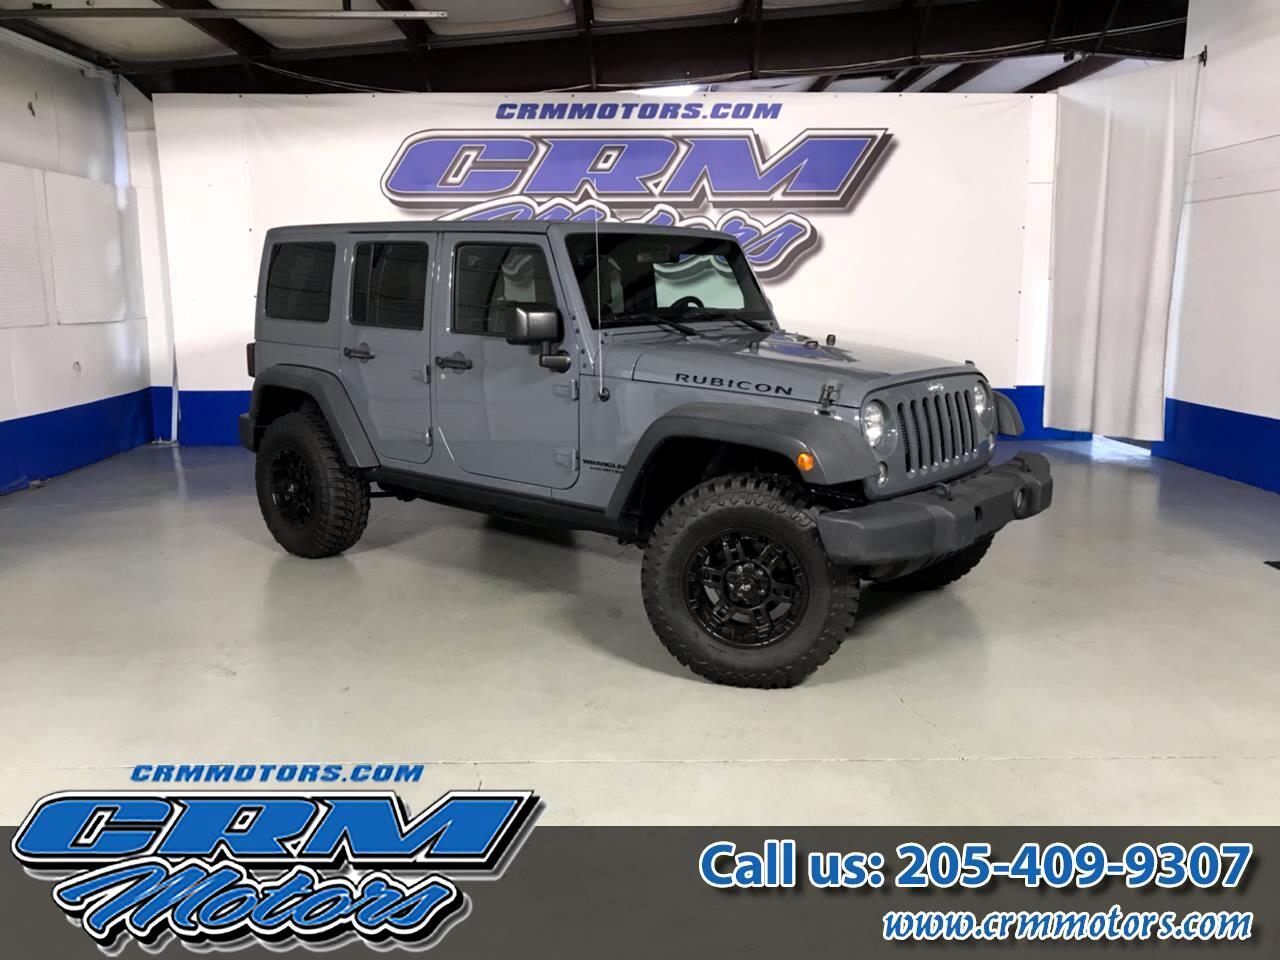 2015 Jeep Wrangler Unlimited 4WD, 4 DR, RUBICON, DESIRED COLOR, ONE OWNER!